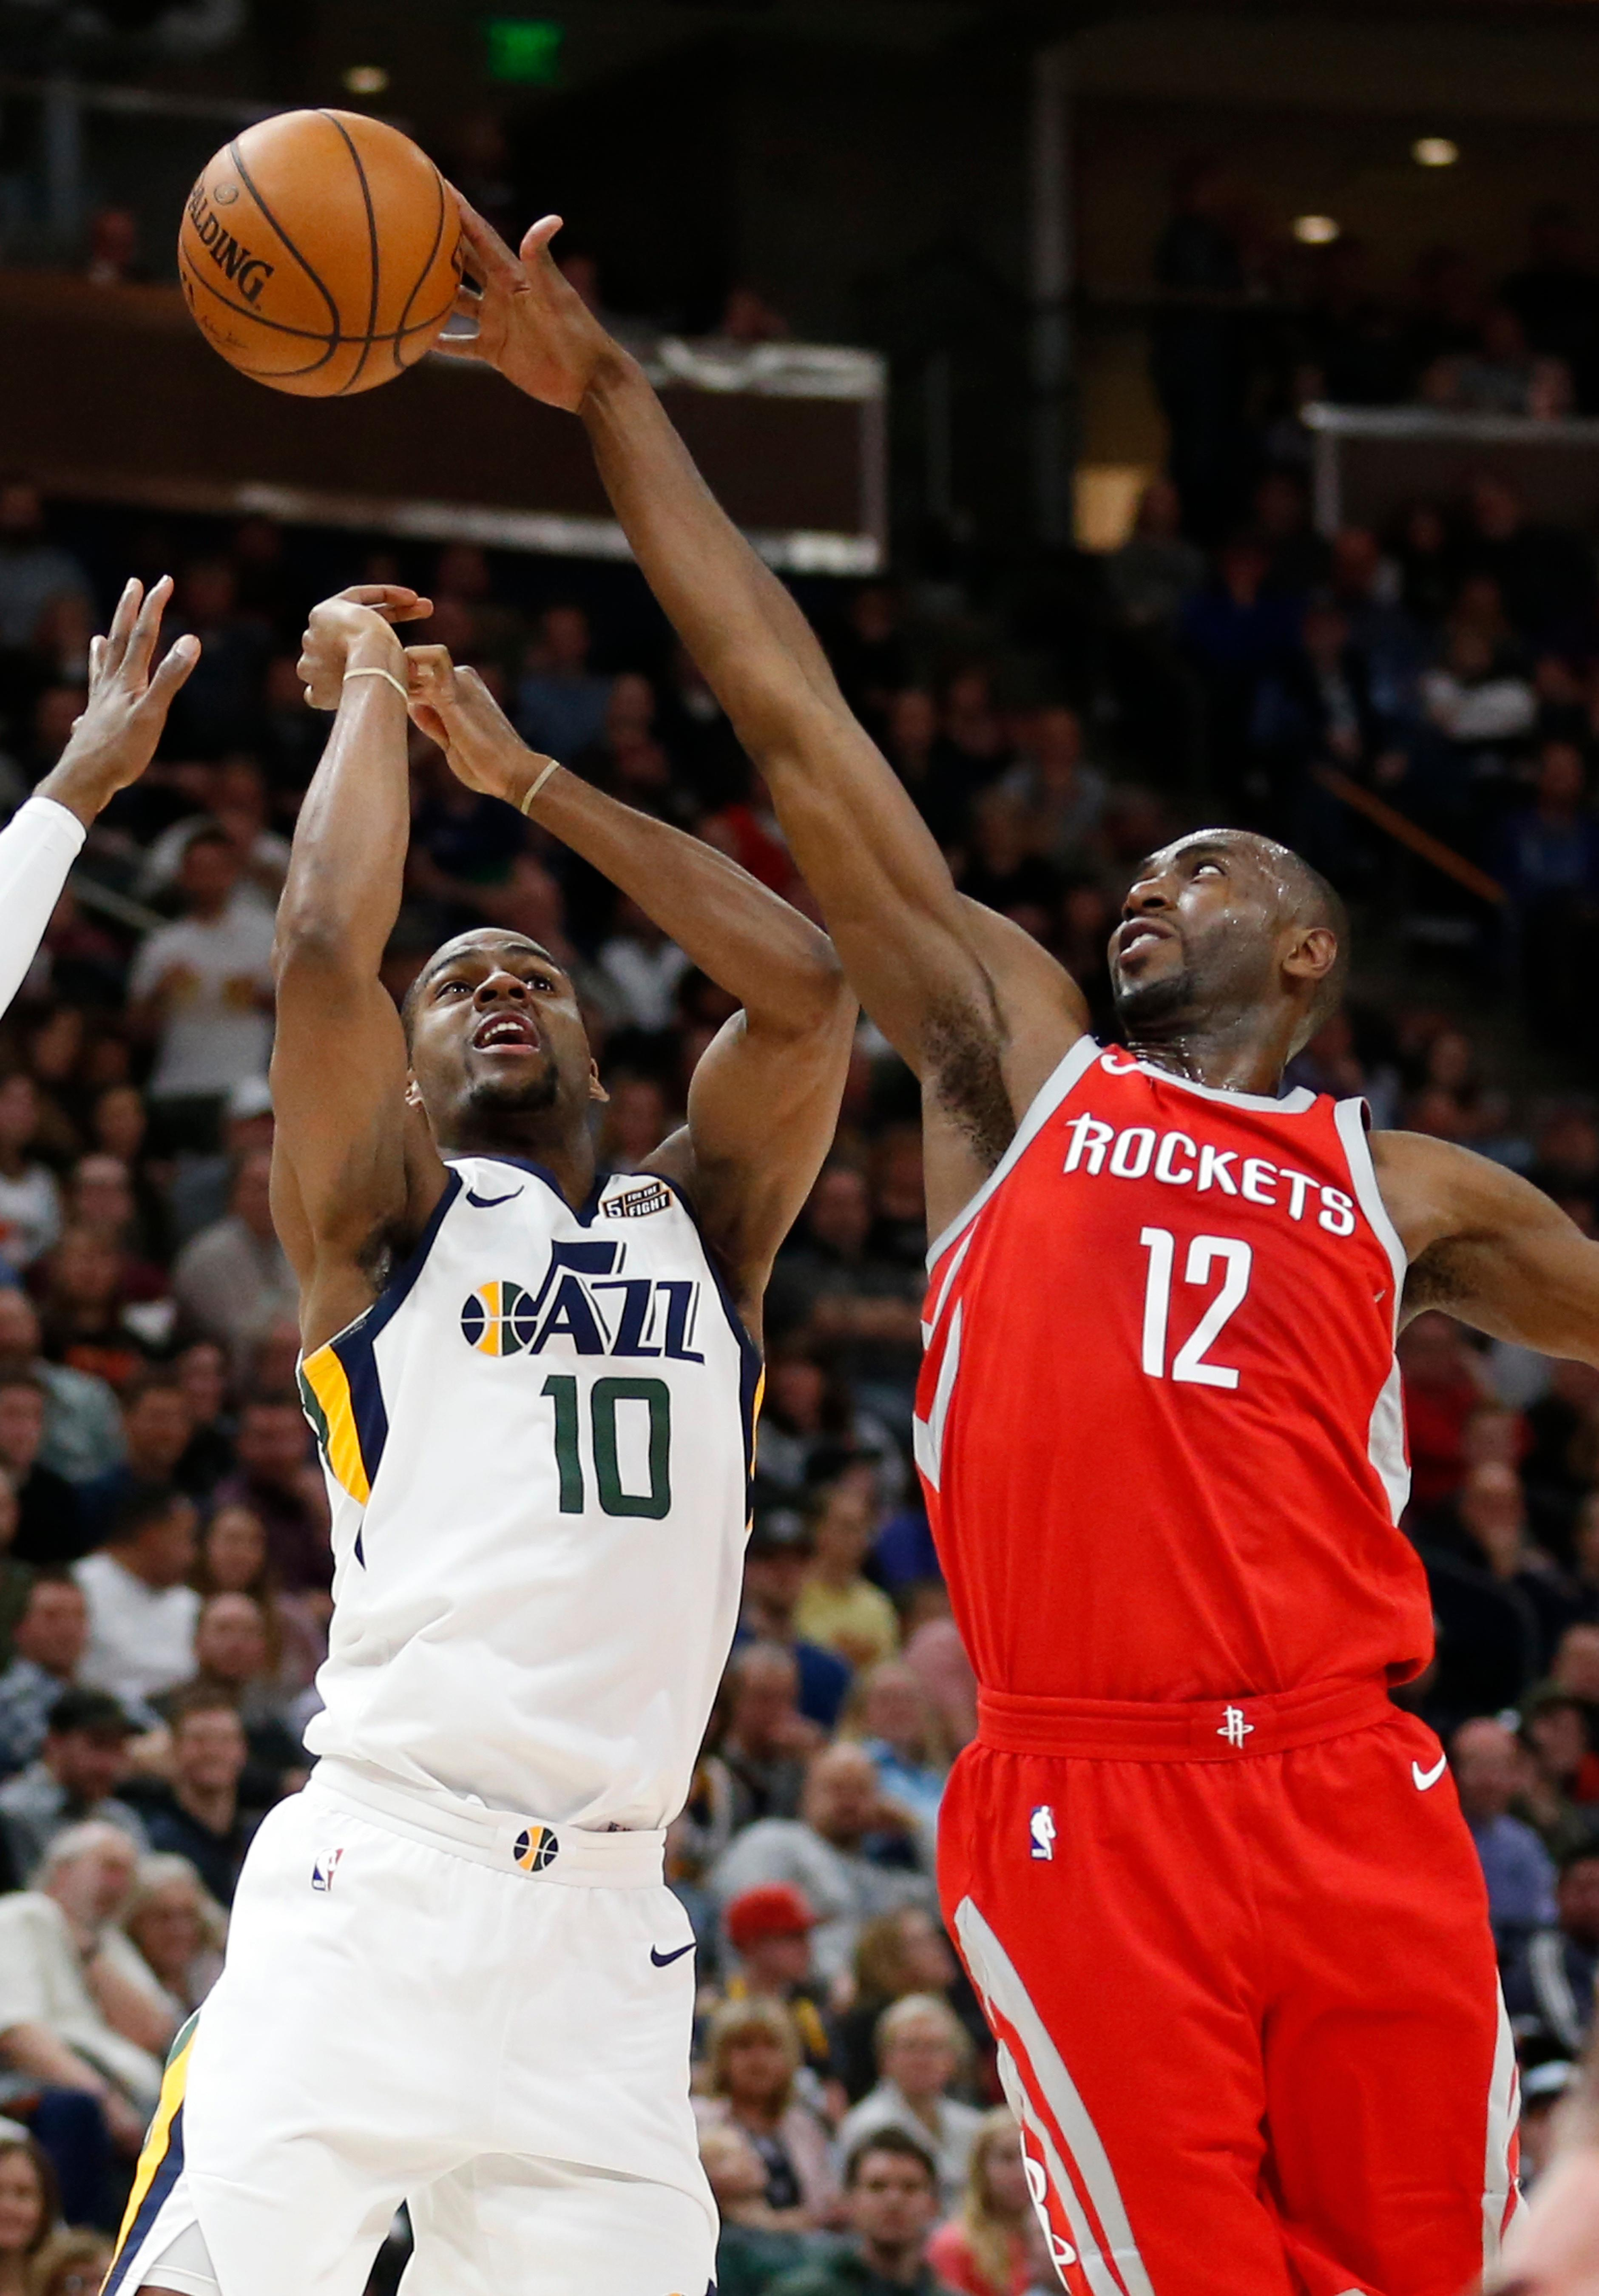 Houston Rockets forward Luc Mbah a Moute (12) blocks a shot by Utah Jazz guard Alec Burks (10) in the second half during an NBA basketball game Monday, Feb. 26, 2018, in Salt Lake City. (AP Photo/Rick Bowmer)